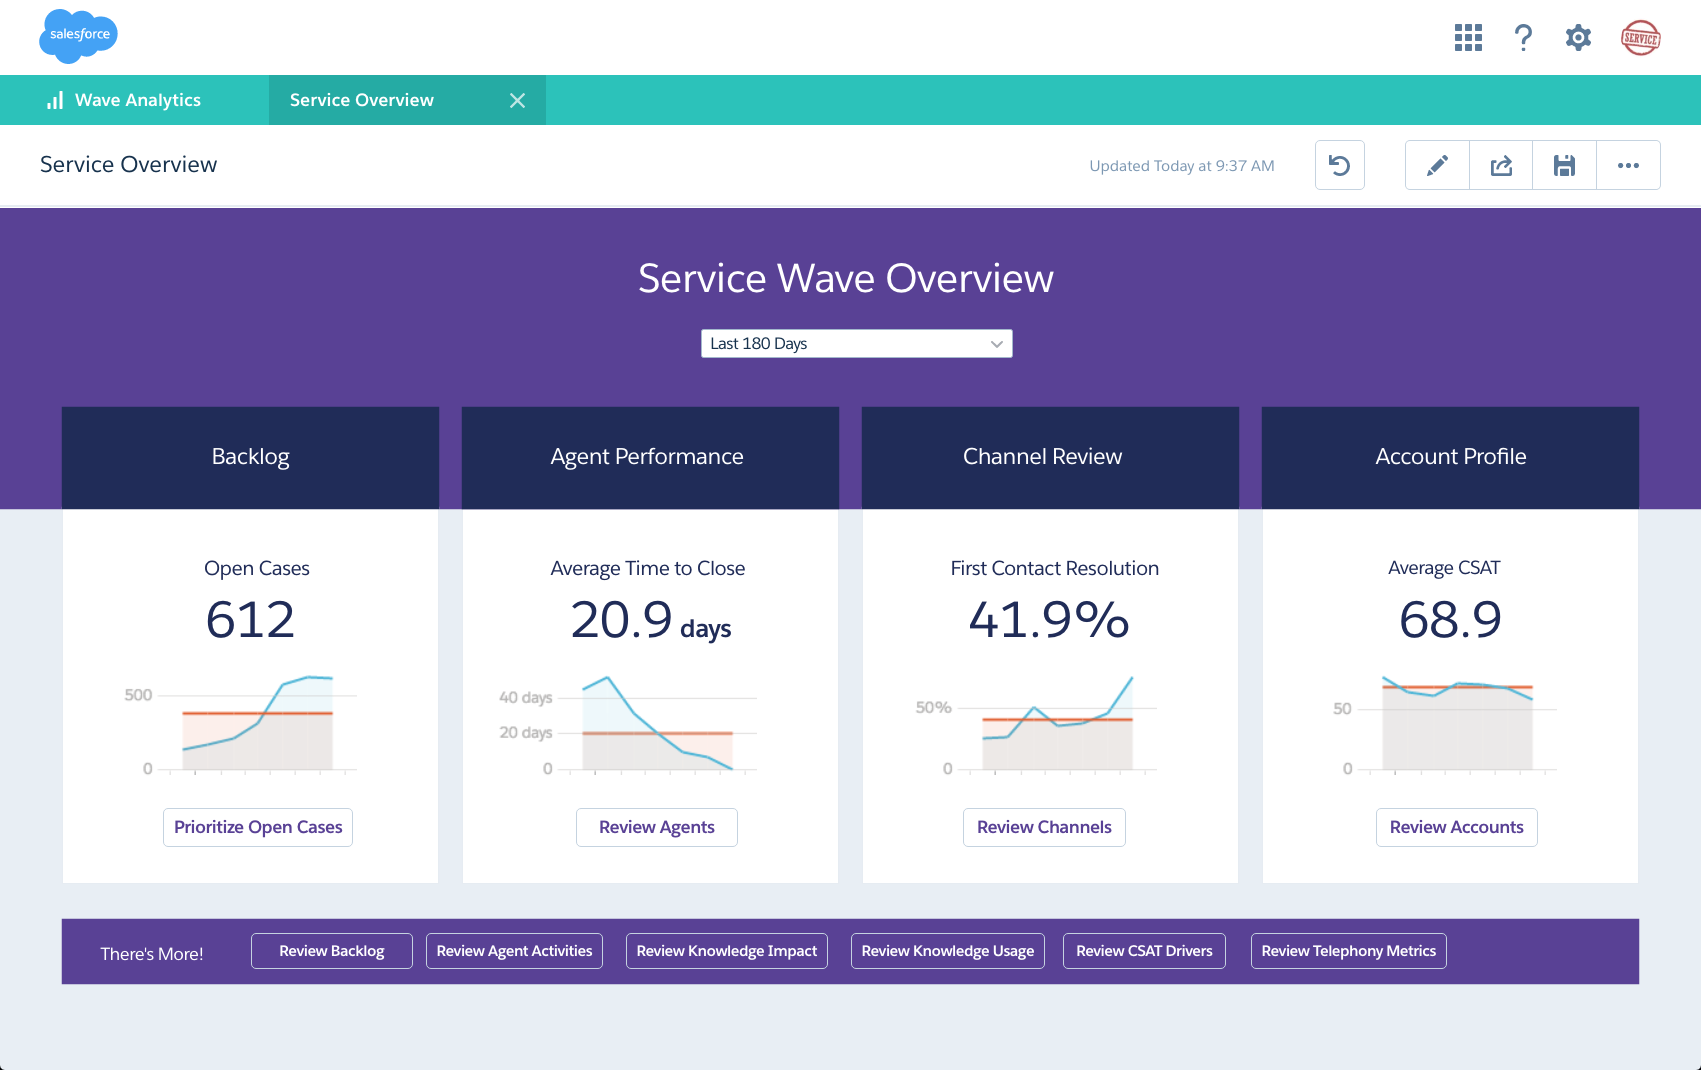 Salesforce Extends Wave Analytics With New Apps for Service and IT